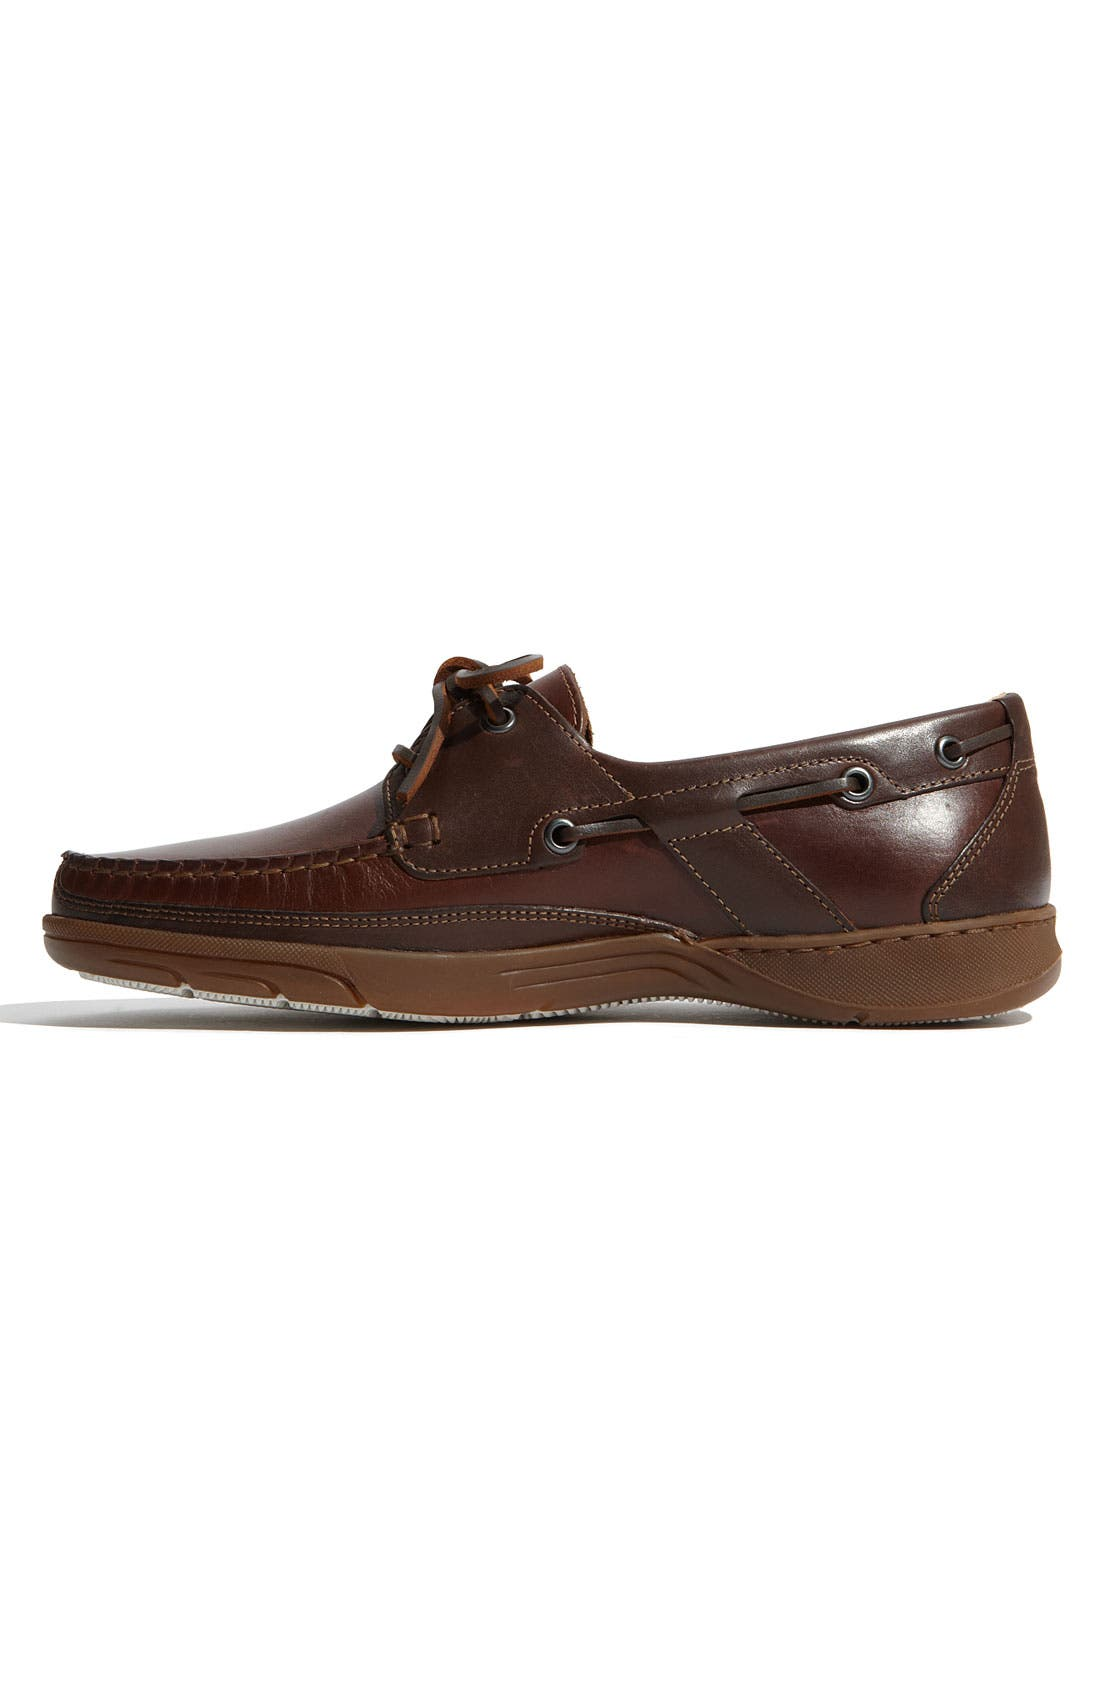 Alternate Image 2  - Mephisto 'Felix' Boat Shoe (Men)